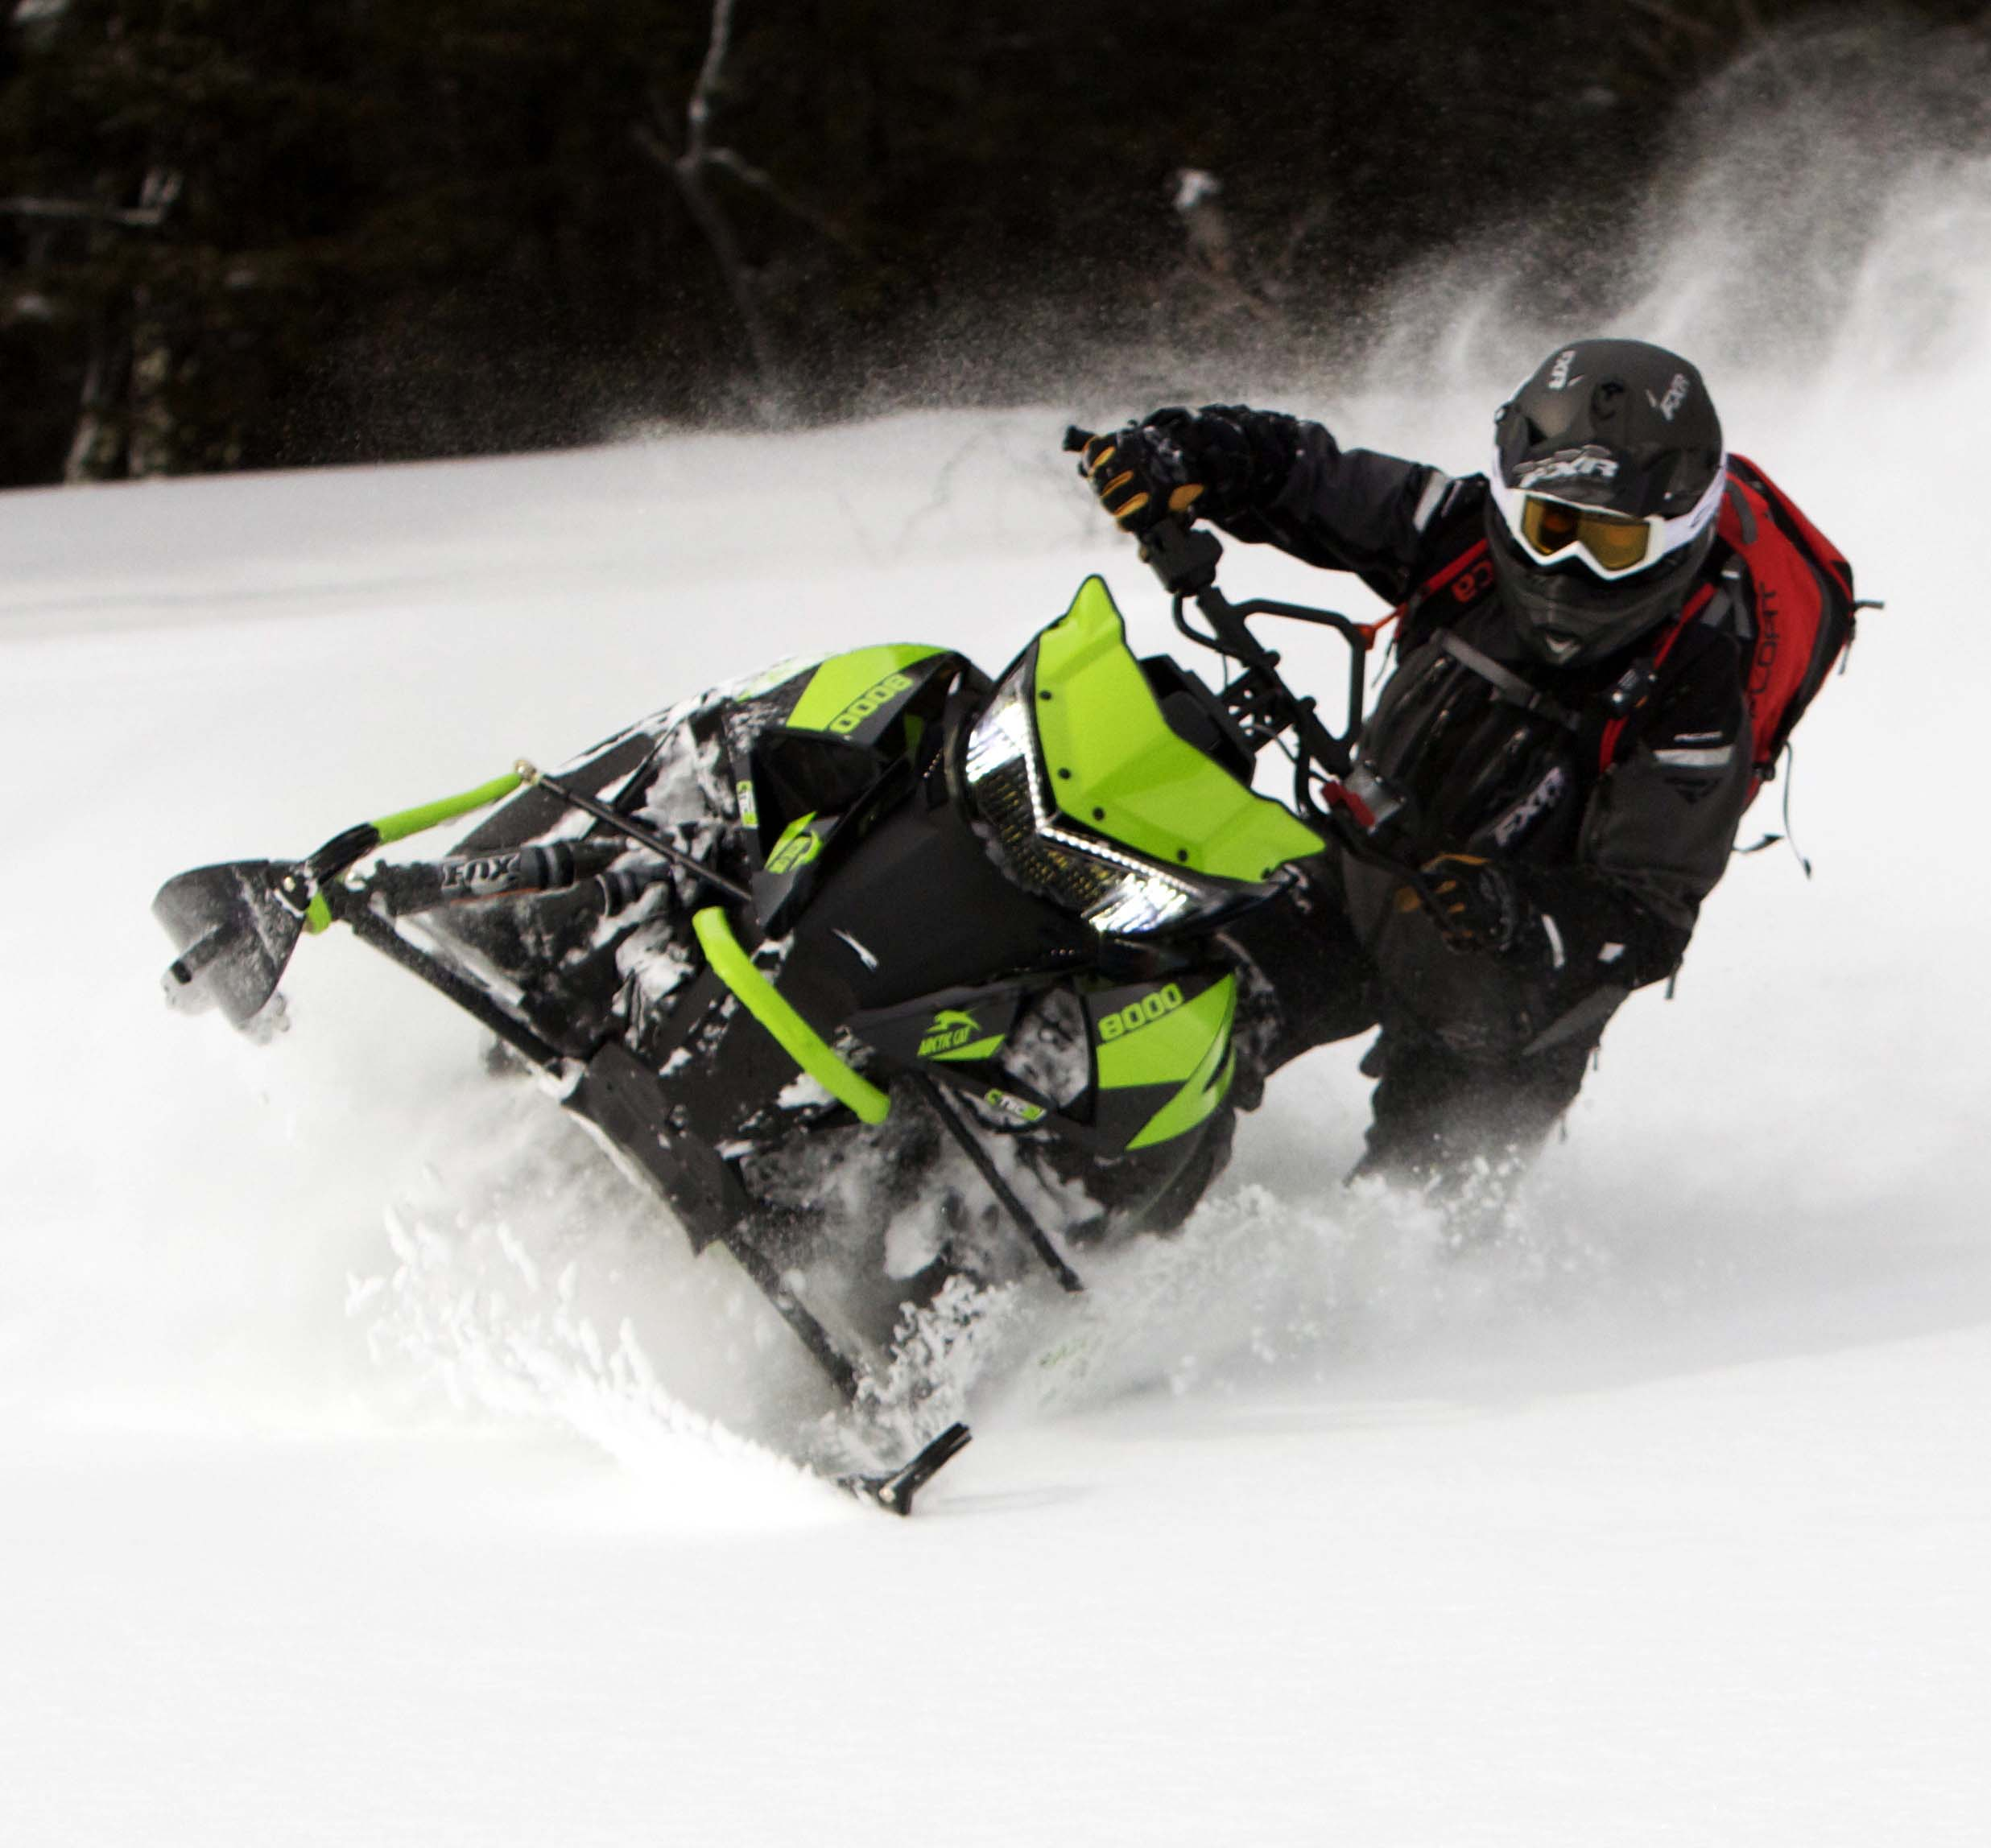 2018 Arctic Cat M8000 Mountain Cat Review + Video